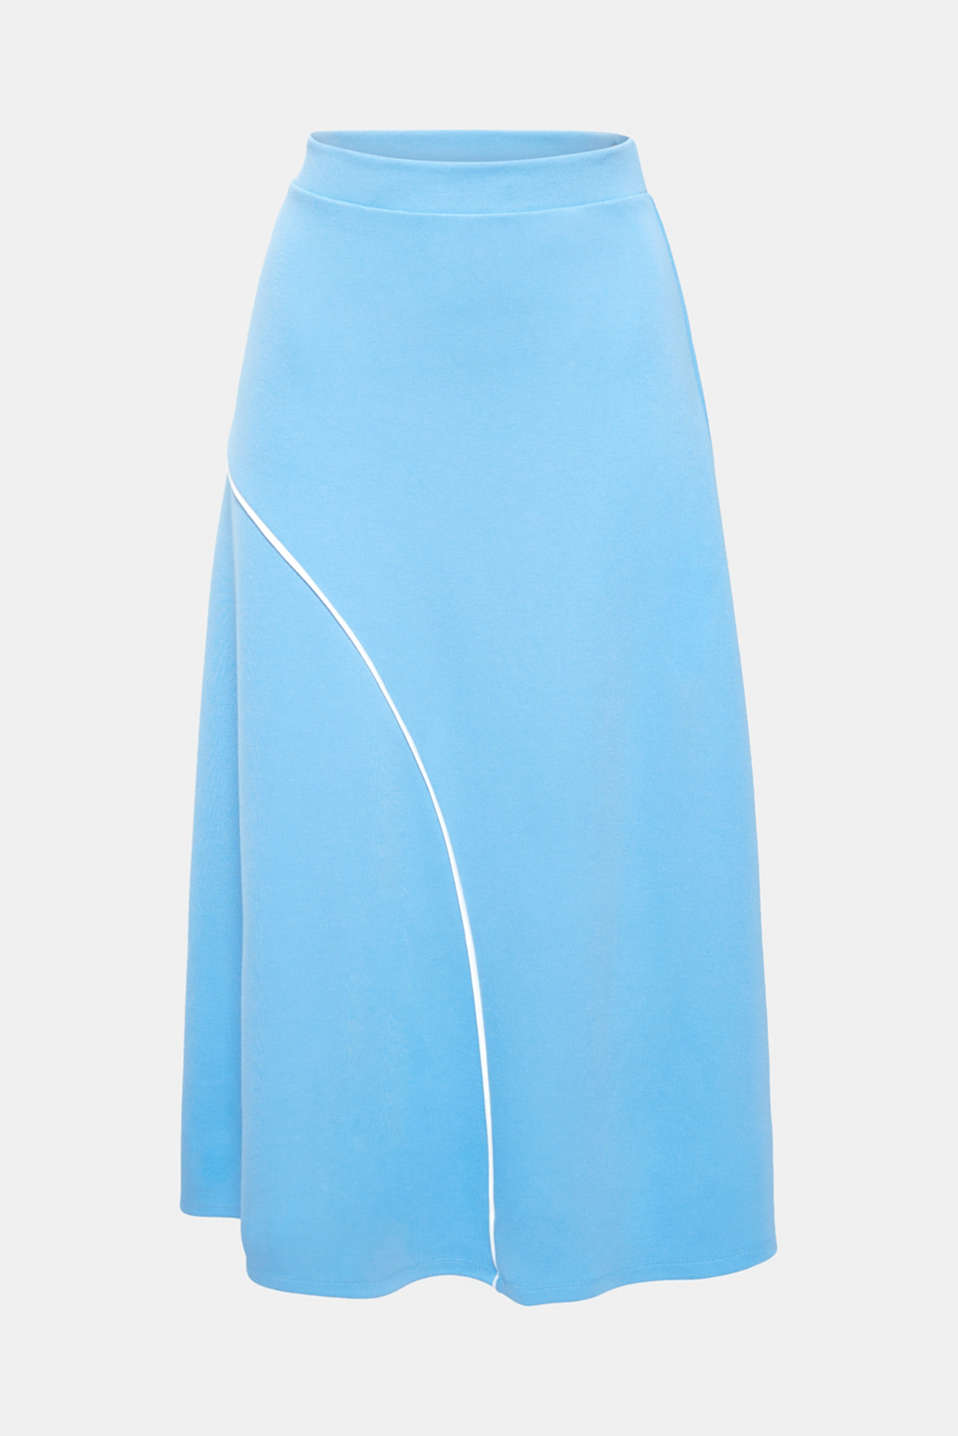 We love retro – not to mention this wonderful, swirling midi skirt made of thick jersey with added stretch for comfort and sporty piping!